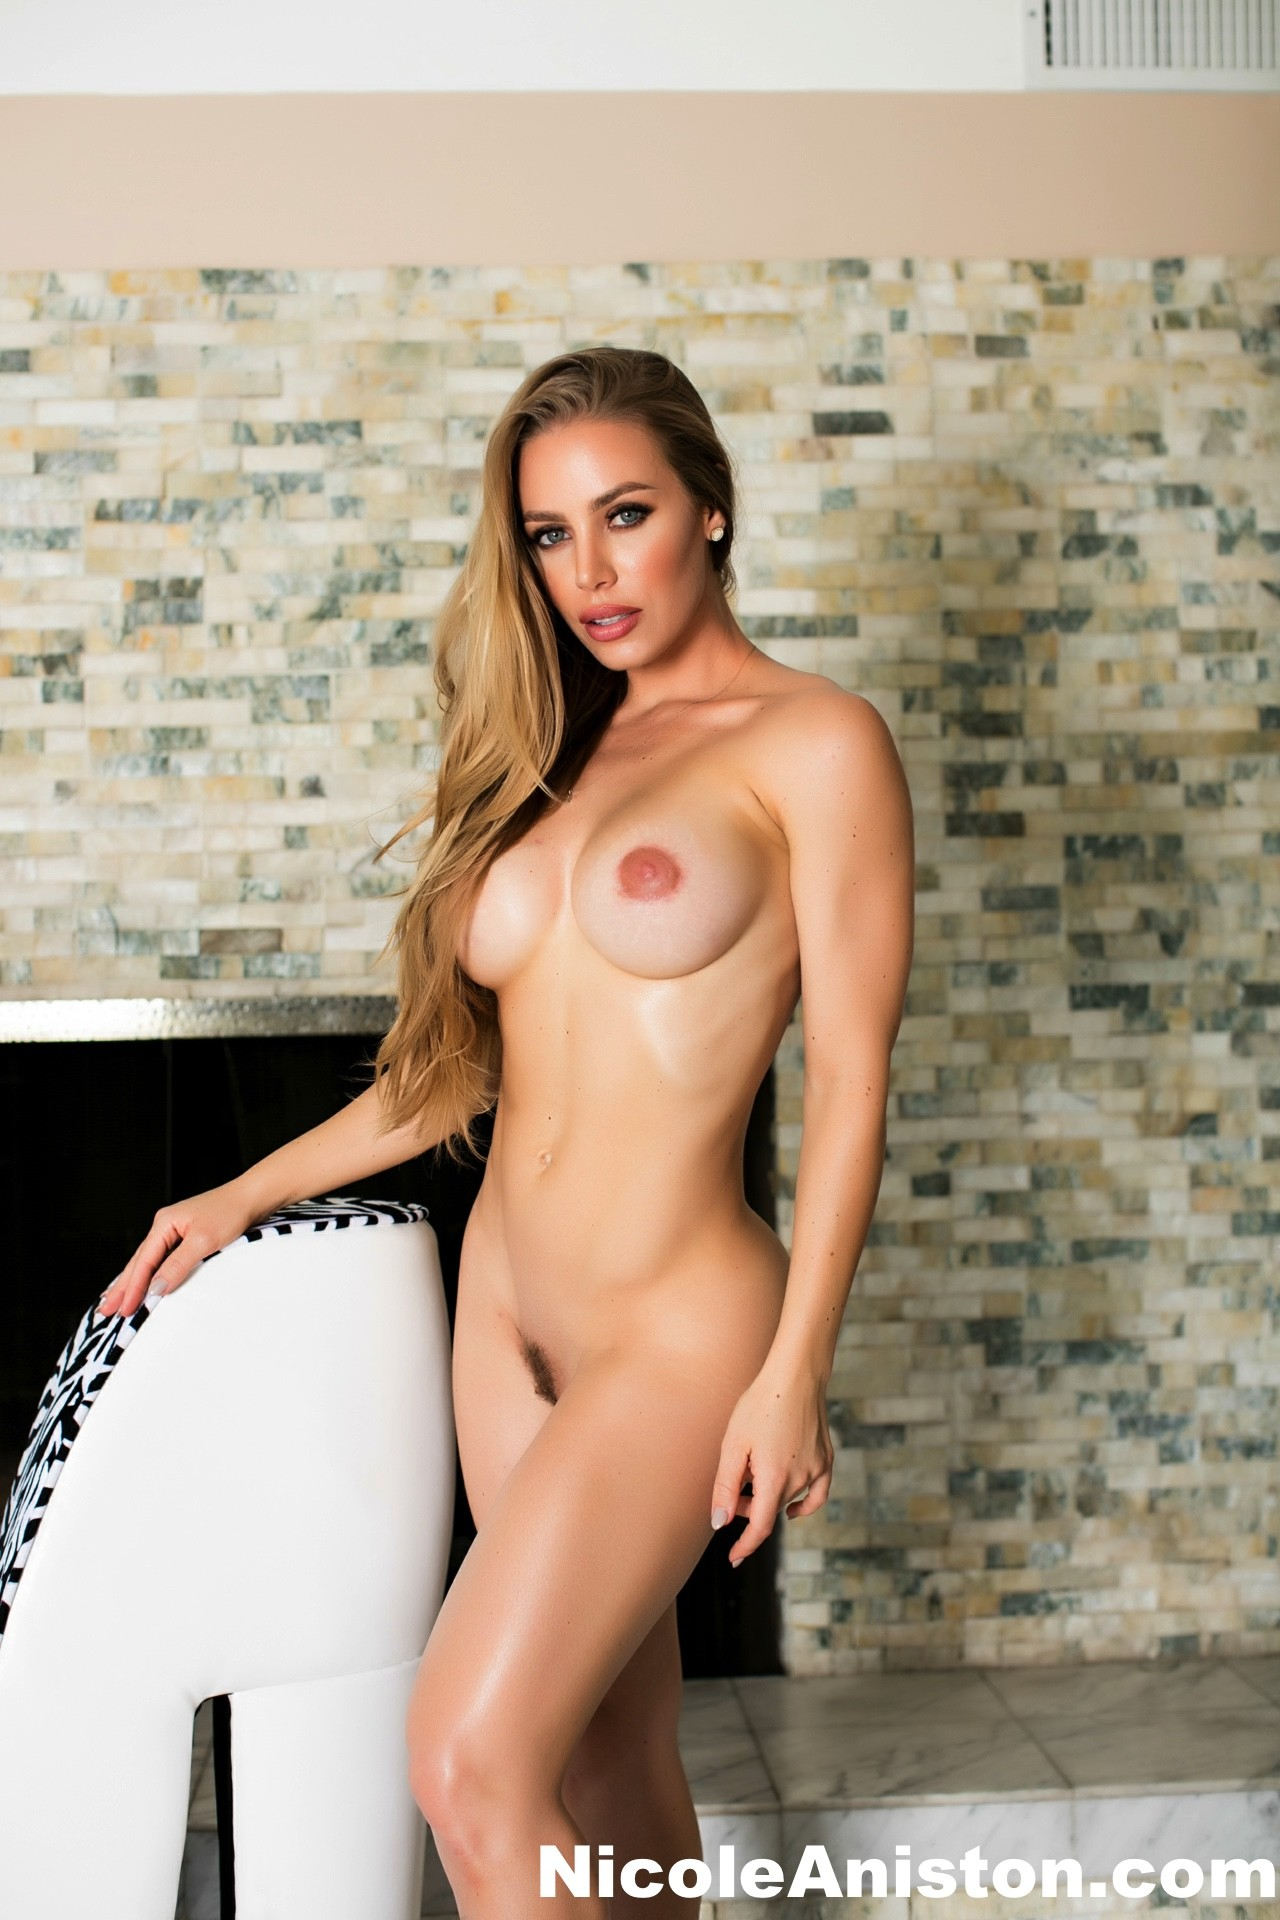 Sexy Nicole nude by the fireplace - Nicole Aniston 82401